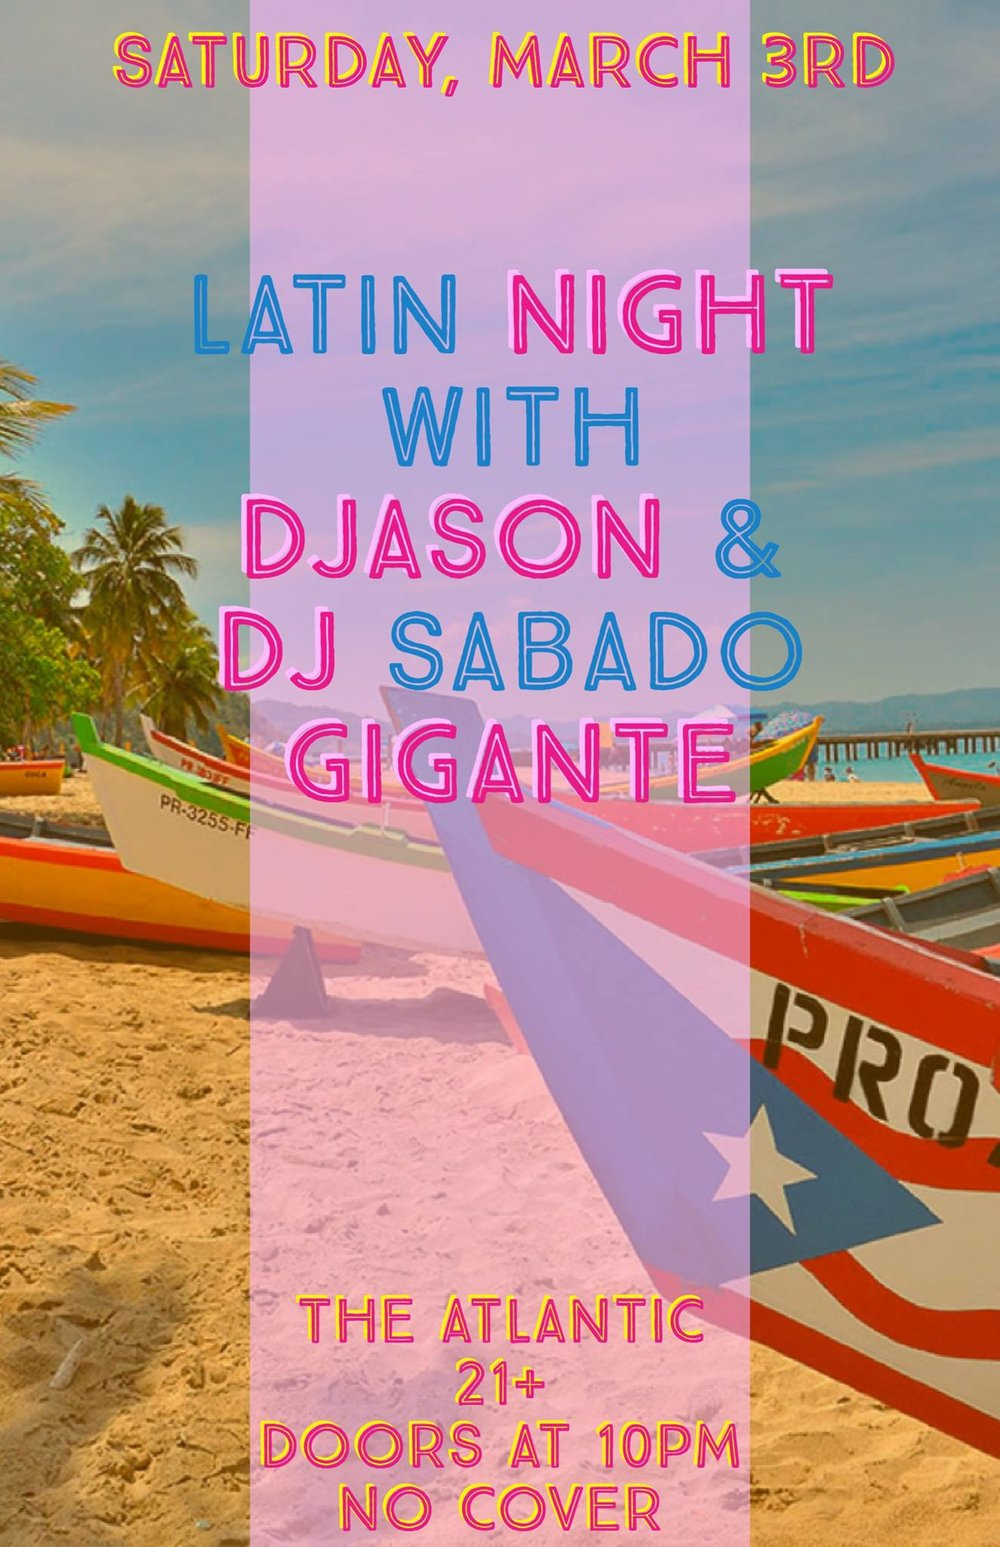 Saturday, March 3rd at 10pm Latin Night at the Atlantic  with DJason and DJ Sabado Gigante!   All styles / No Cover  21+ Only